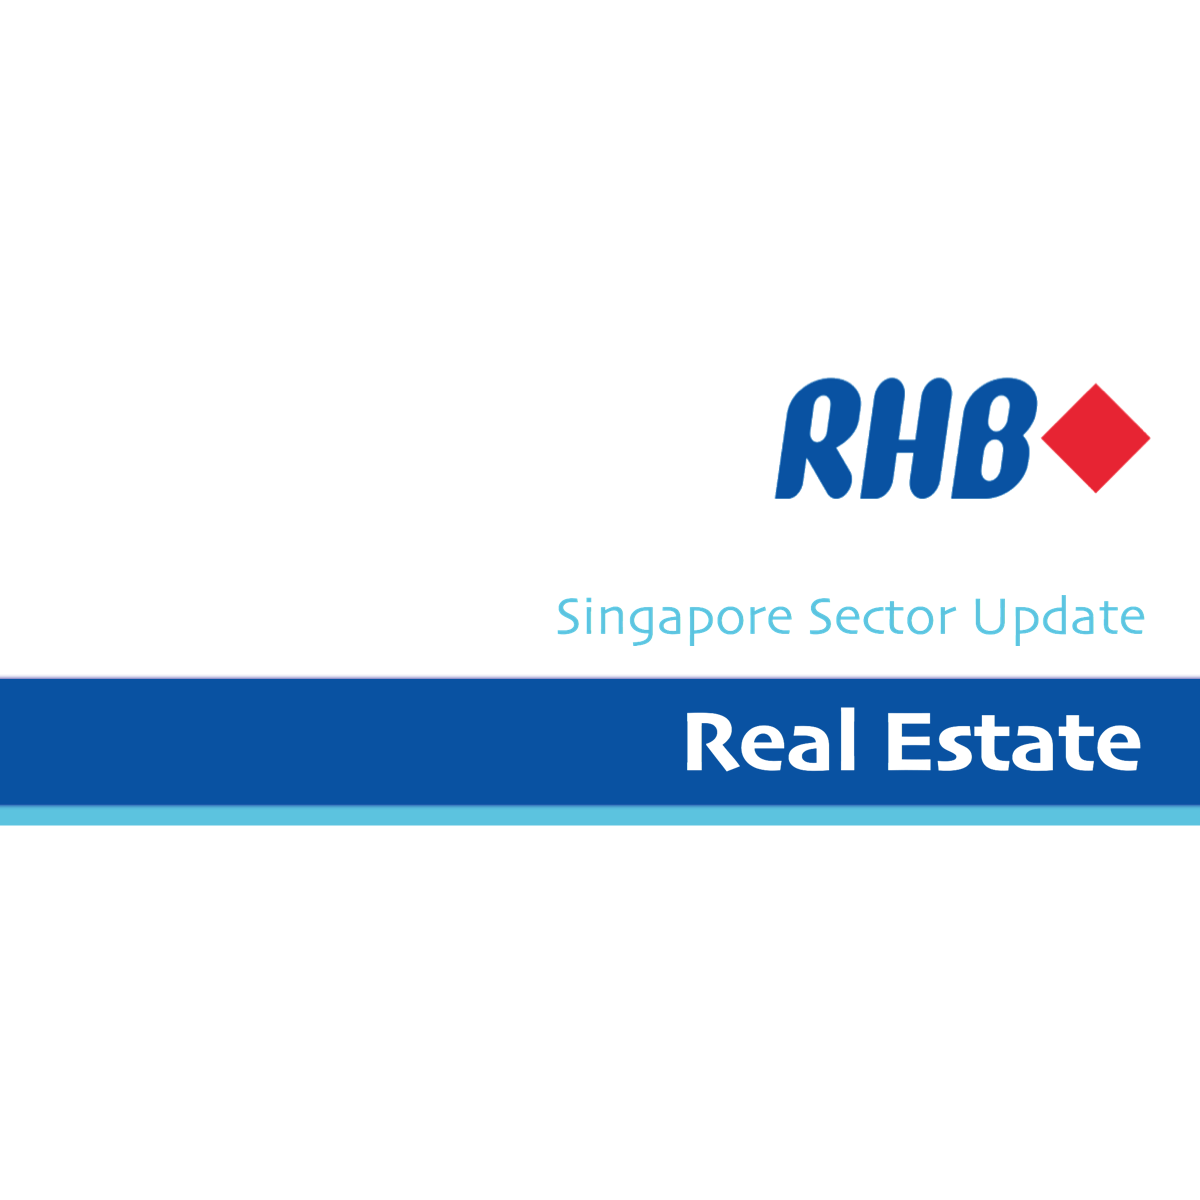 Real Estate - RHB Securities Research 2018-07-23: Taking The Wind Out Of Sails